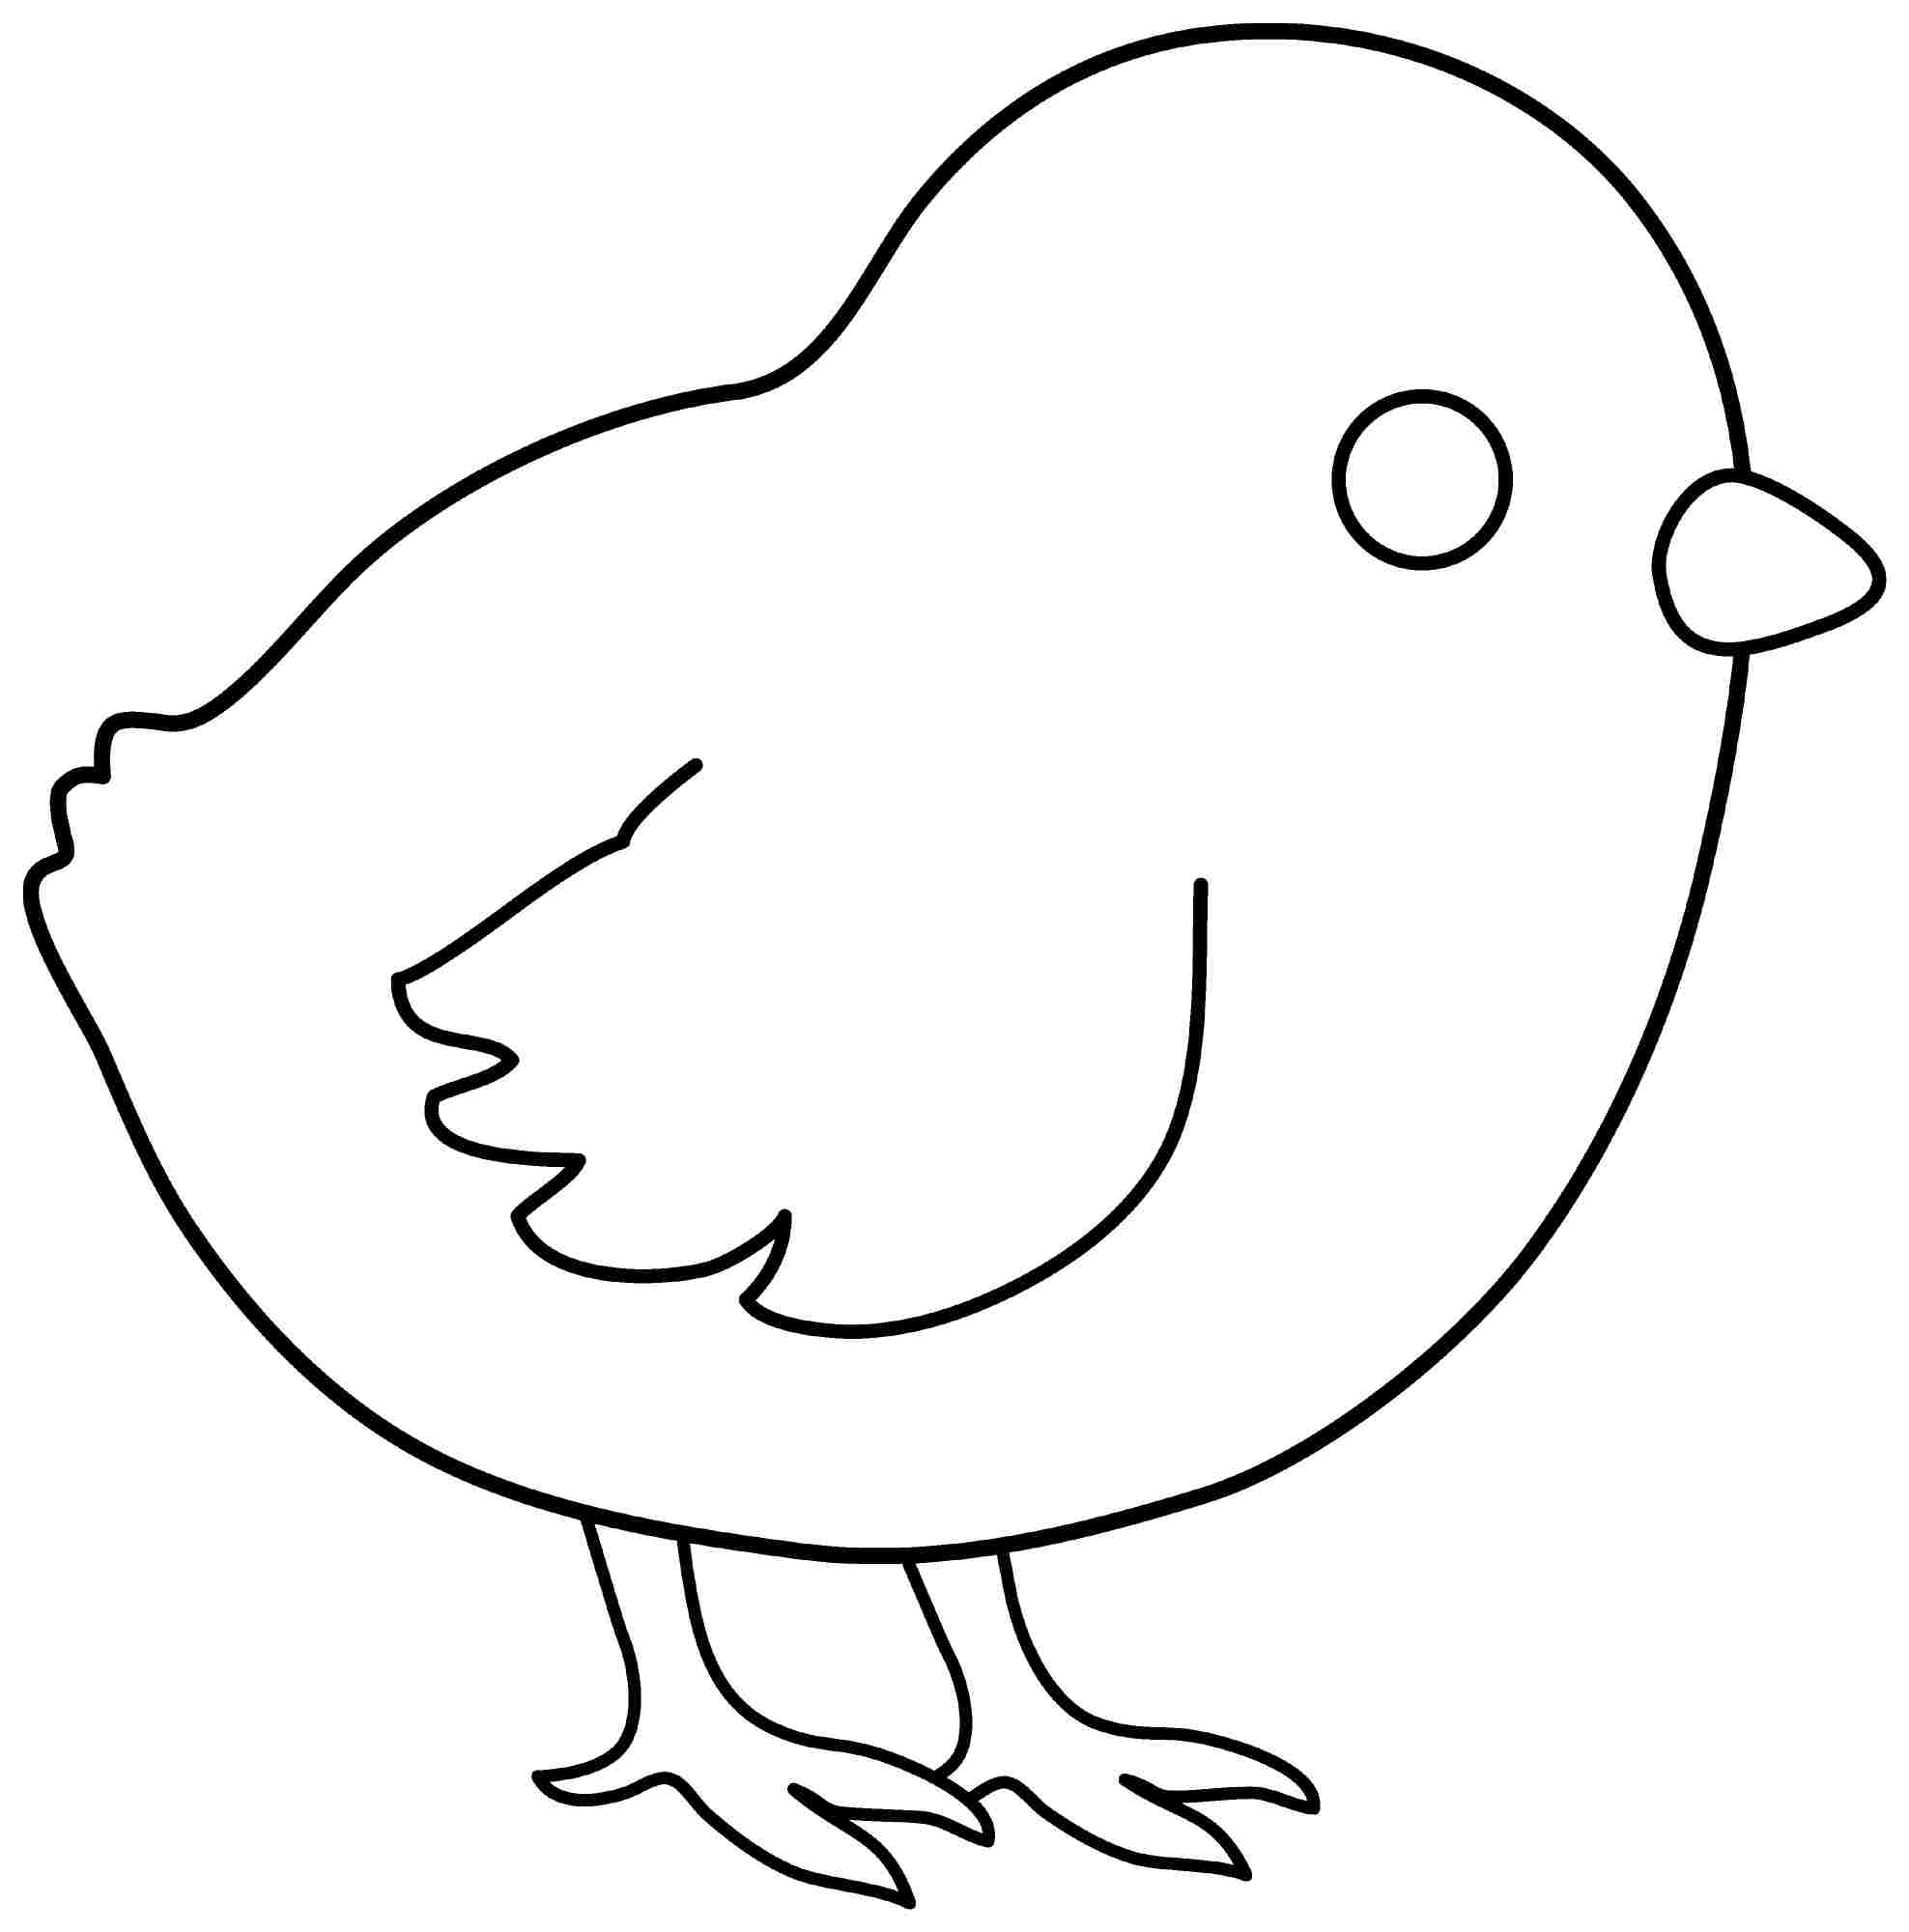 best images of chick and baby chick outline